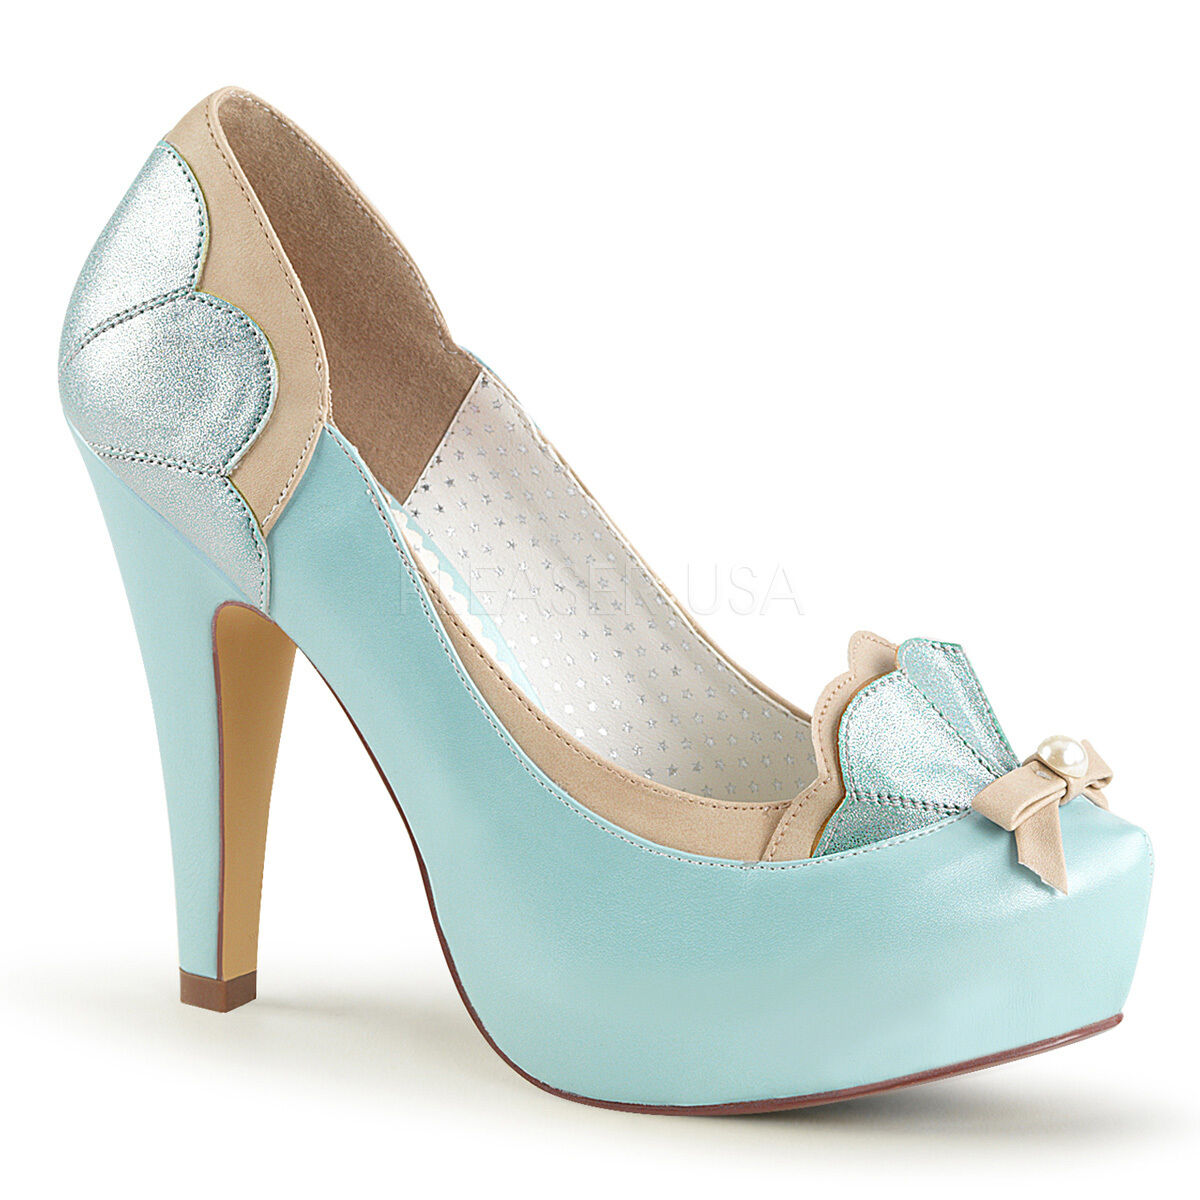 PINUP 4 1 2  Heel Retro Baby bluee Two Tone Scalloped Pumps Women shoes w  Bow